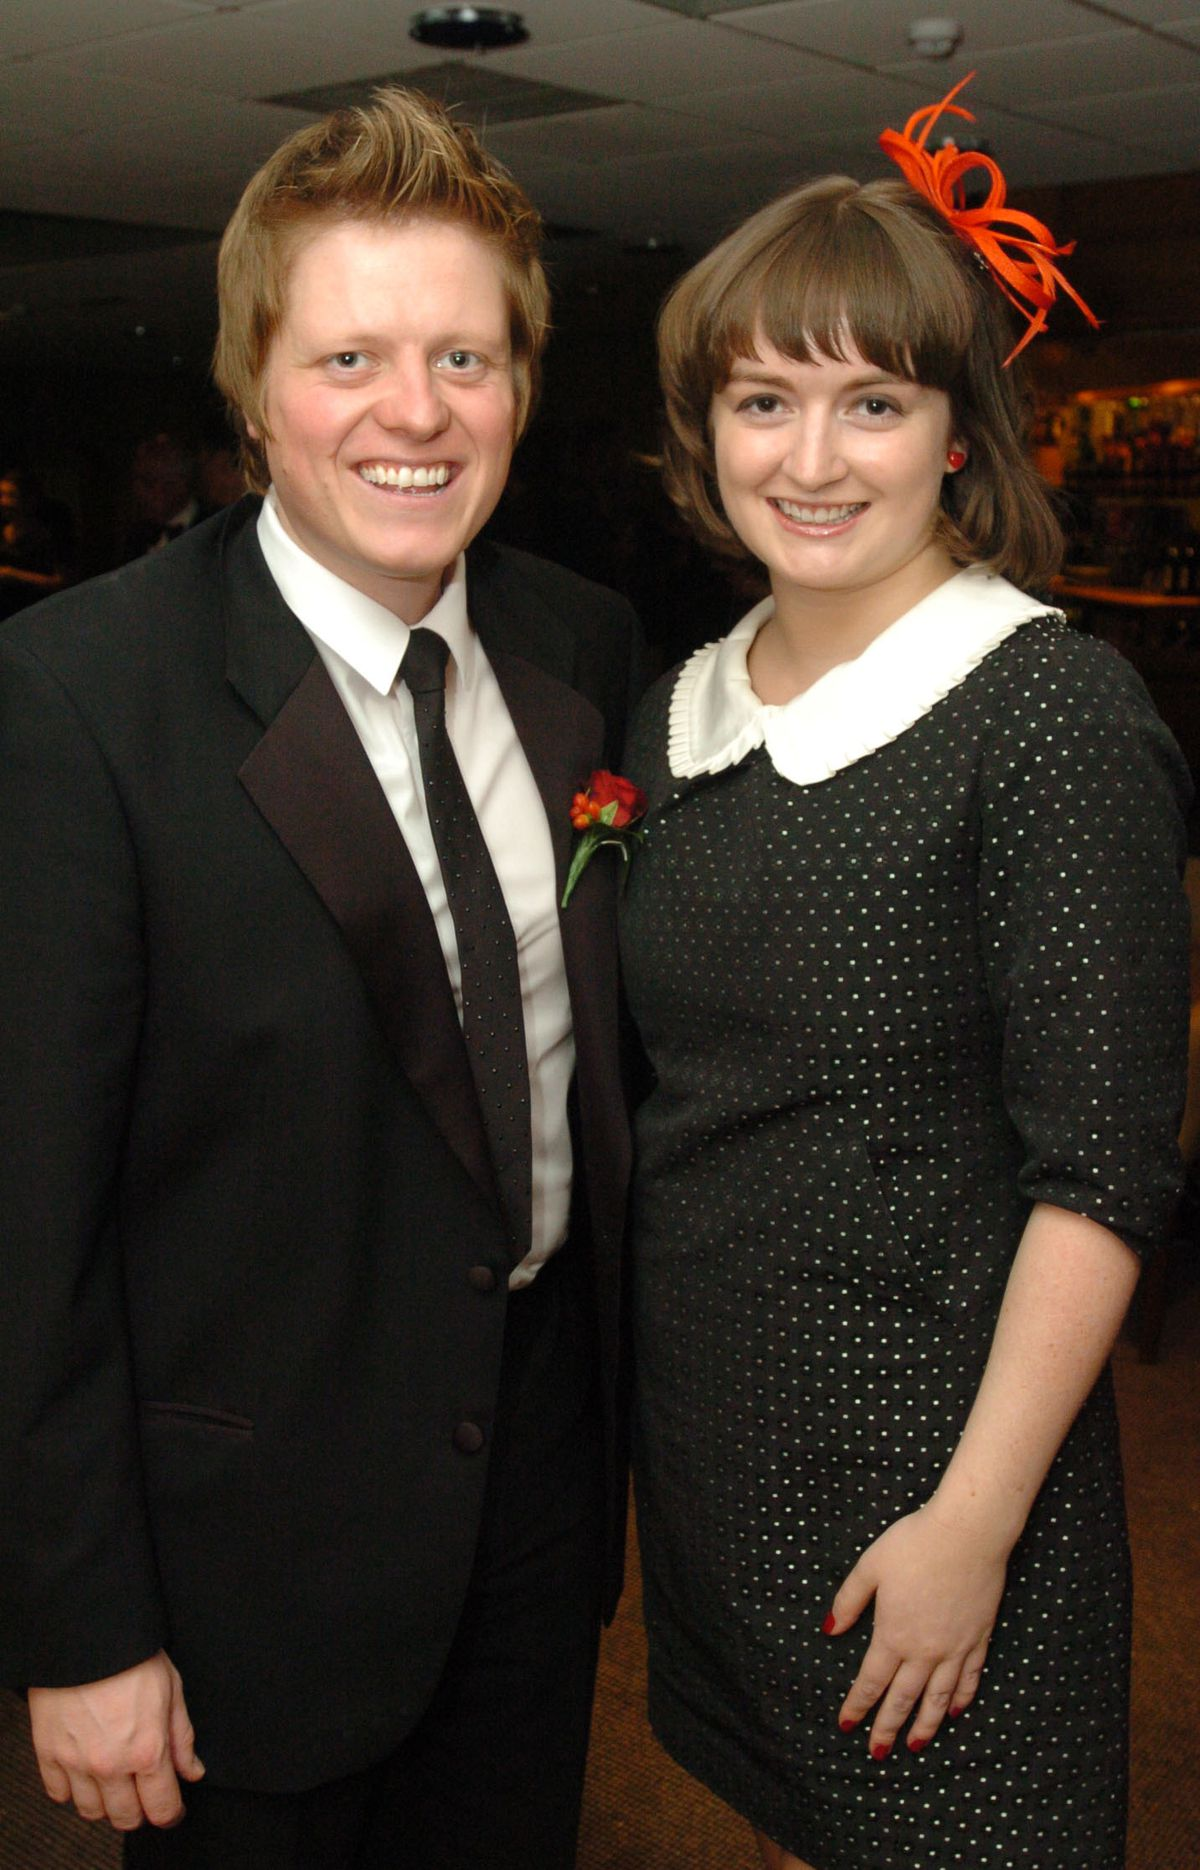 James Holt with former colleague AlysCOR Cummings at Shropshire Press Ball at the Grays Hotel, Telford, in 2010